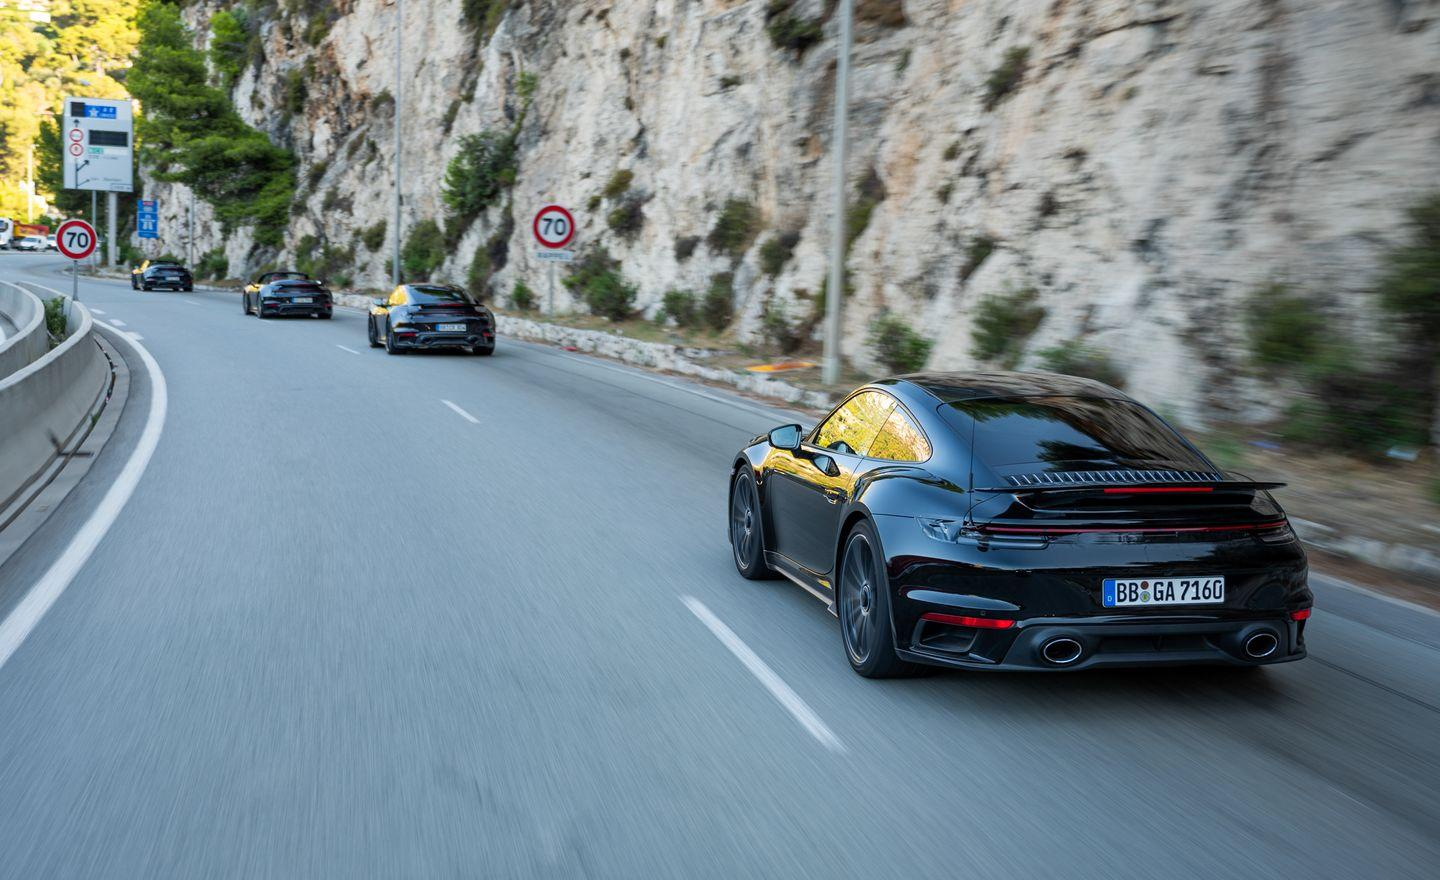 <p>Though it's claimed to be 110 pounds heavier, the 992-gen 911 Turbo S doesn't compromise comfort or performance. </p>